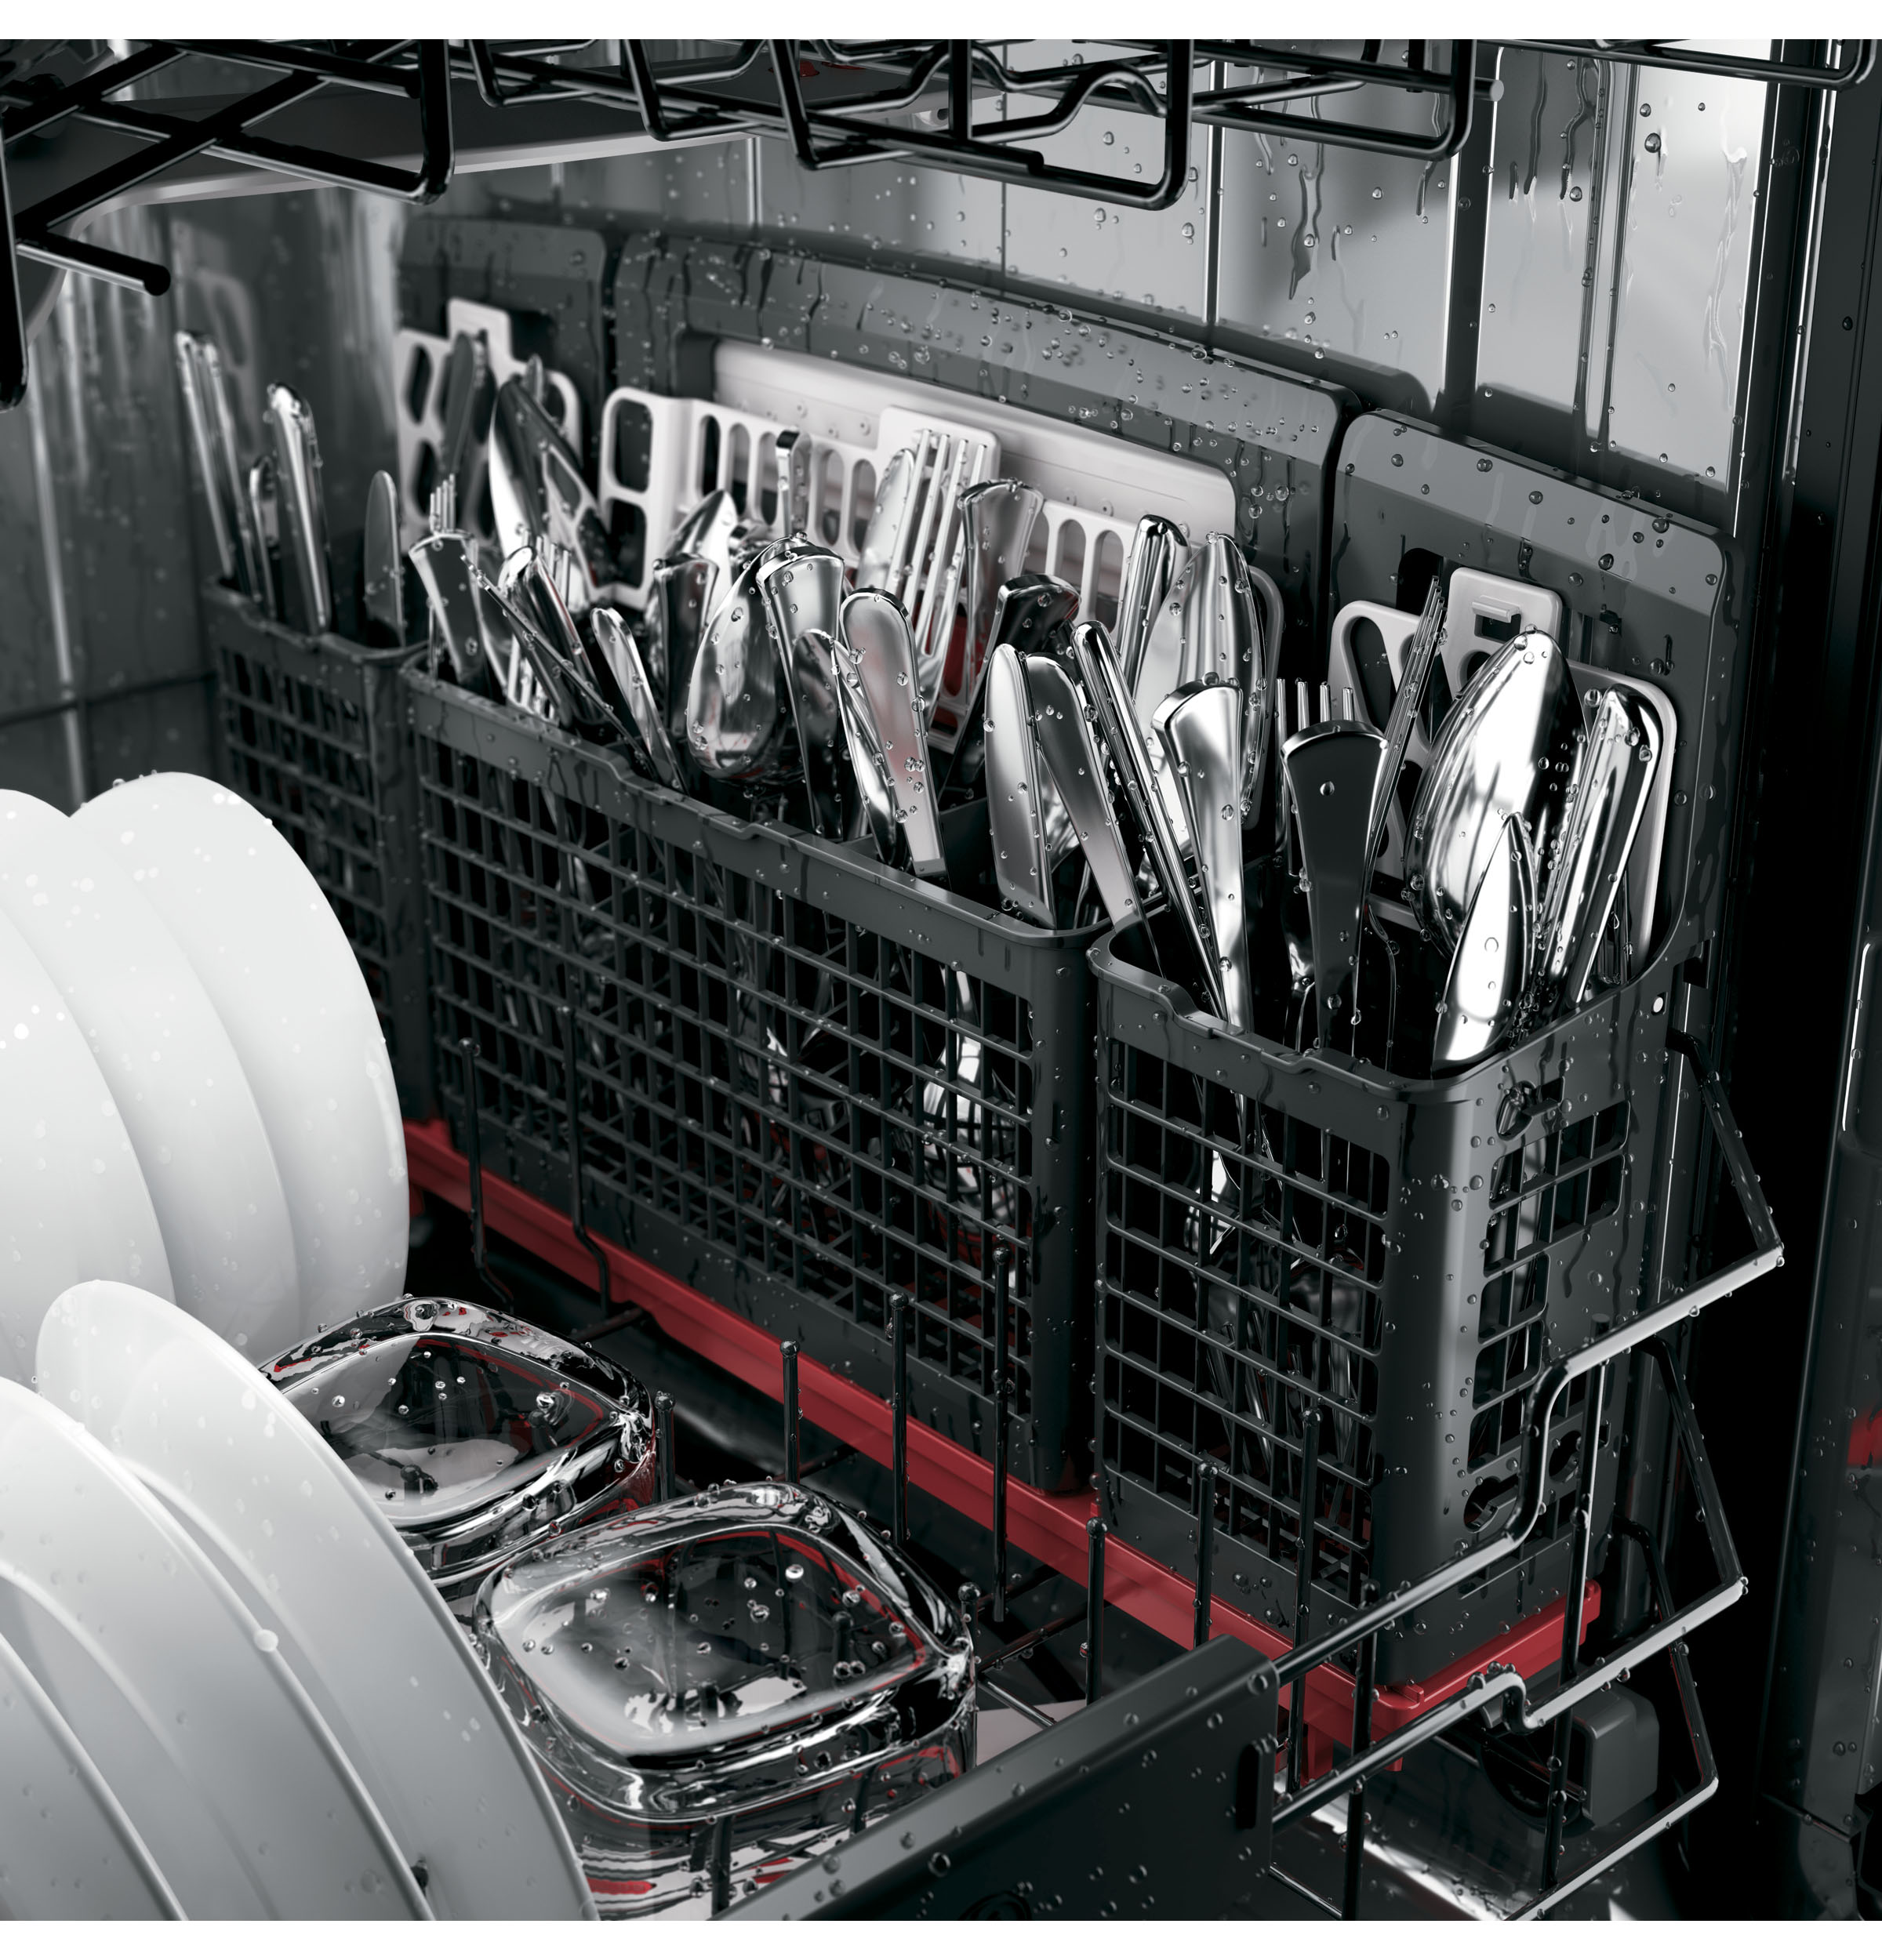 Model: PDT855SSJSS | GE Profile GE Profile™ Stainless Steel Interior Dishwasher with Hidden Controls